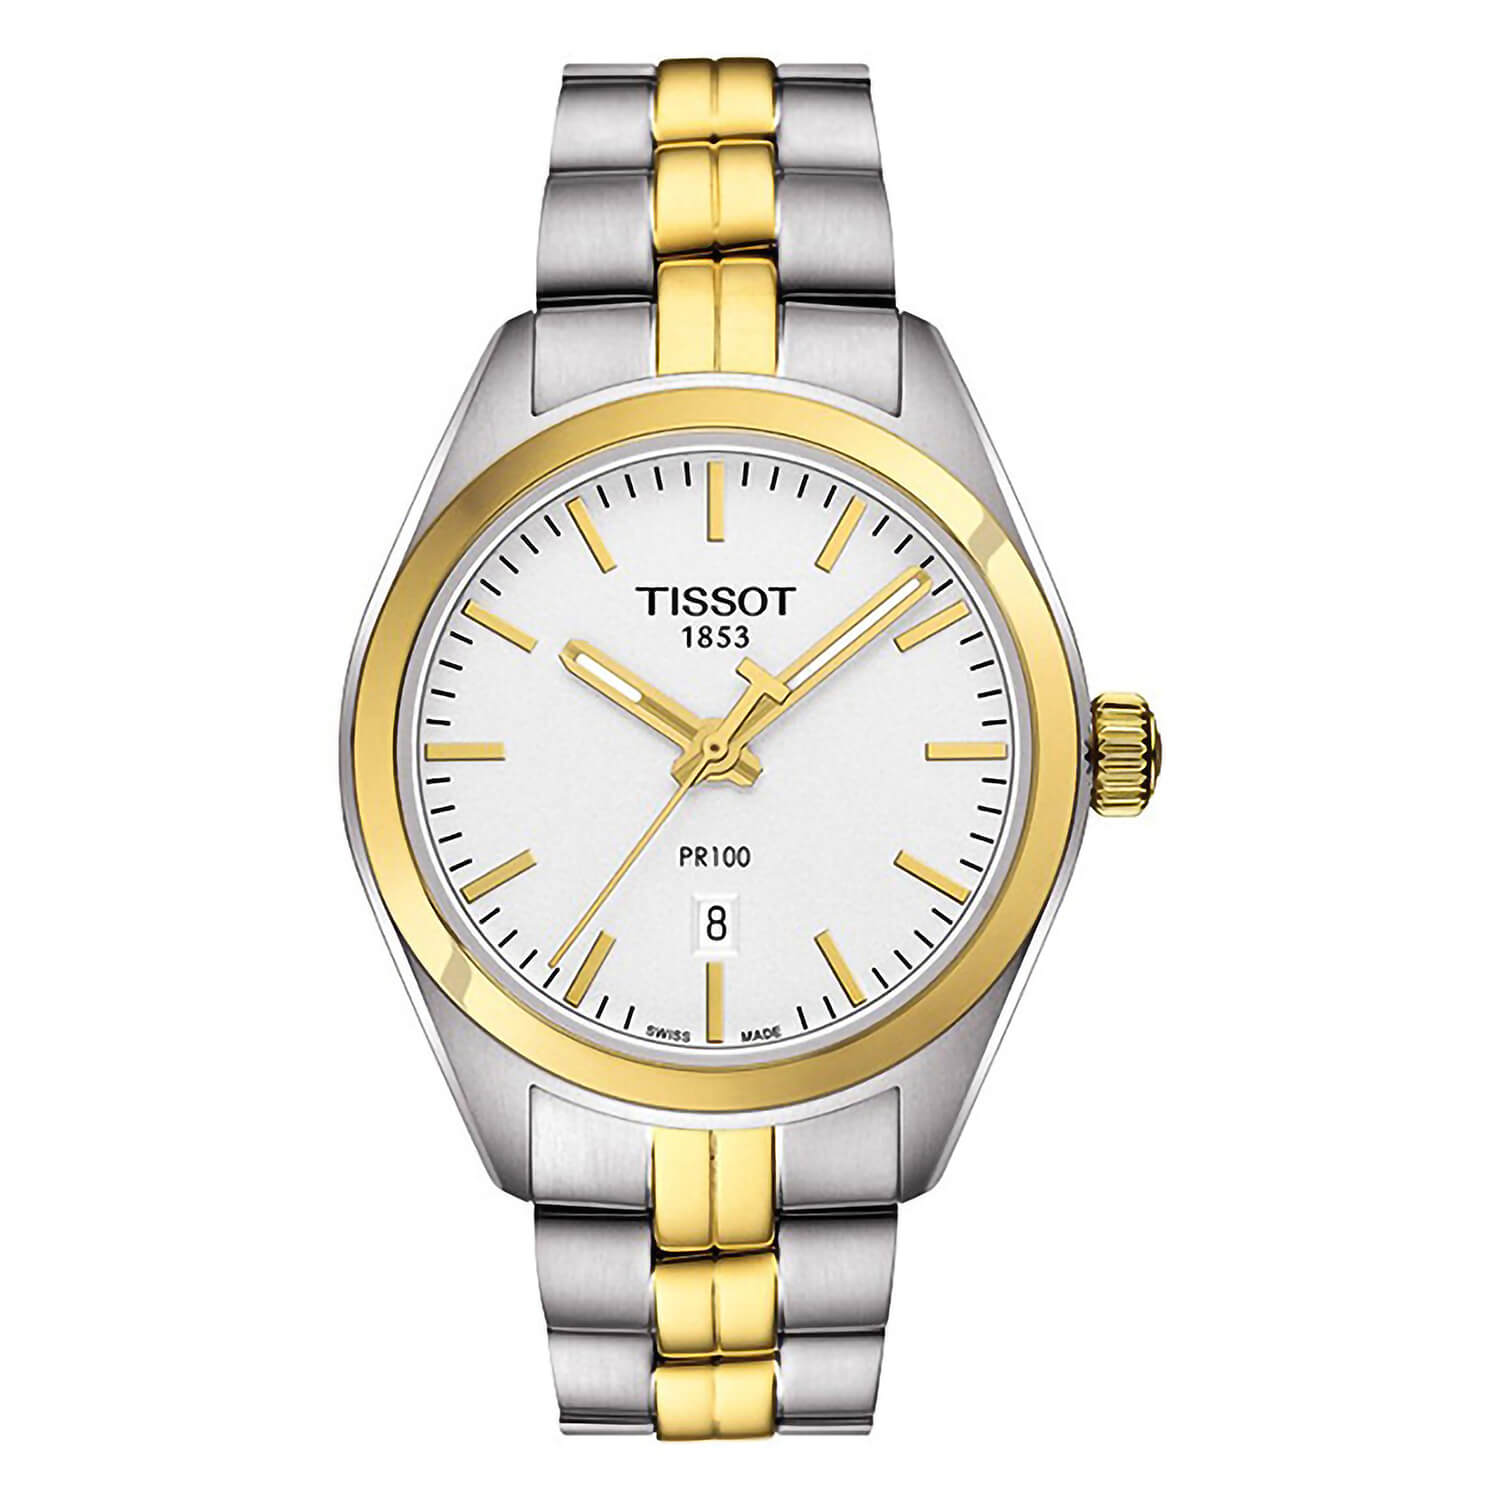 Tissot PR 100 ladies' white dial two-tone bracelet watch